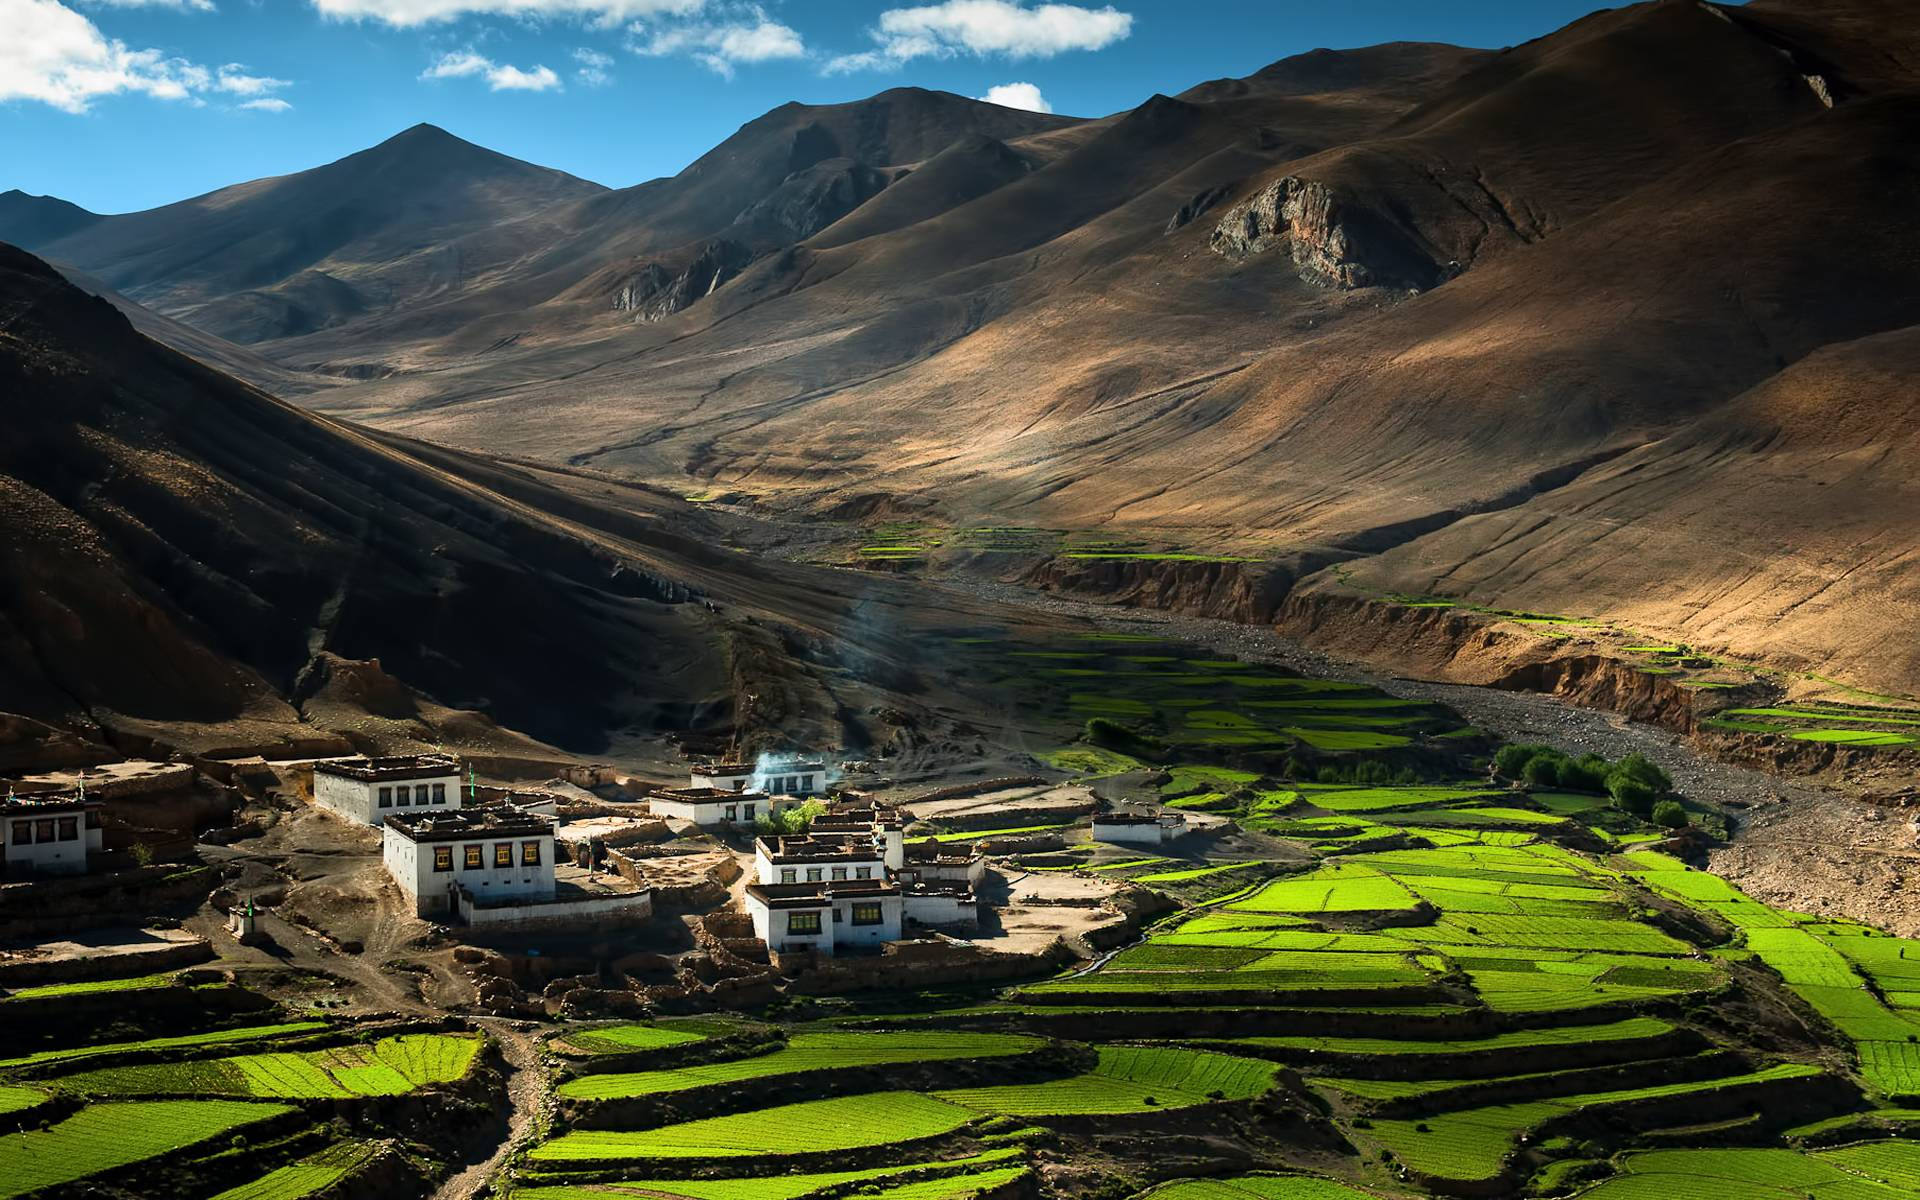 Tibet Scenery Ranwuhu Stock Photo - Image: 79464711